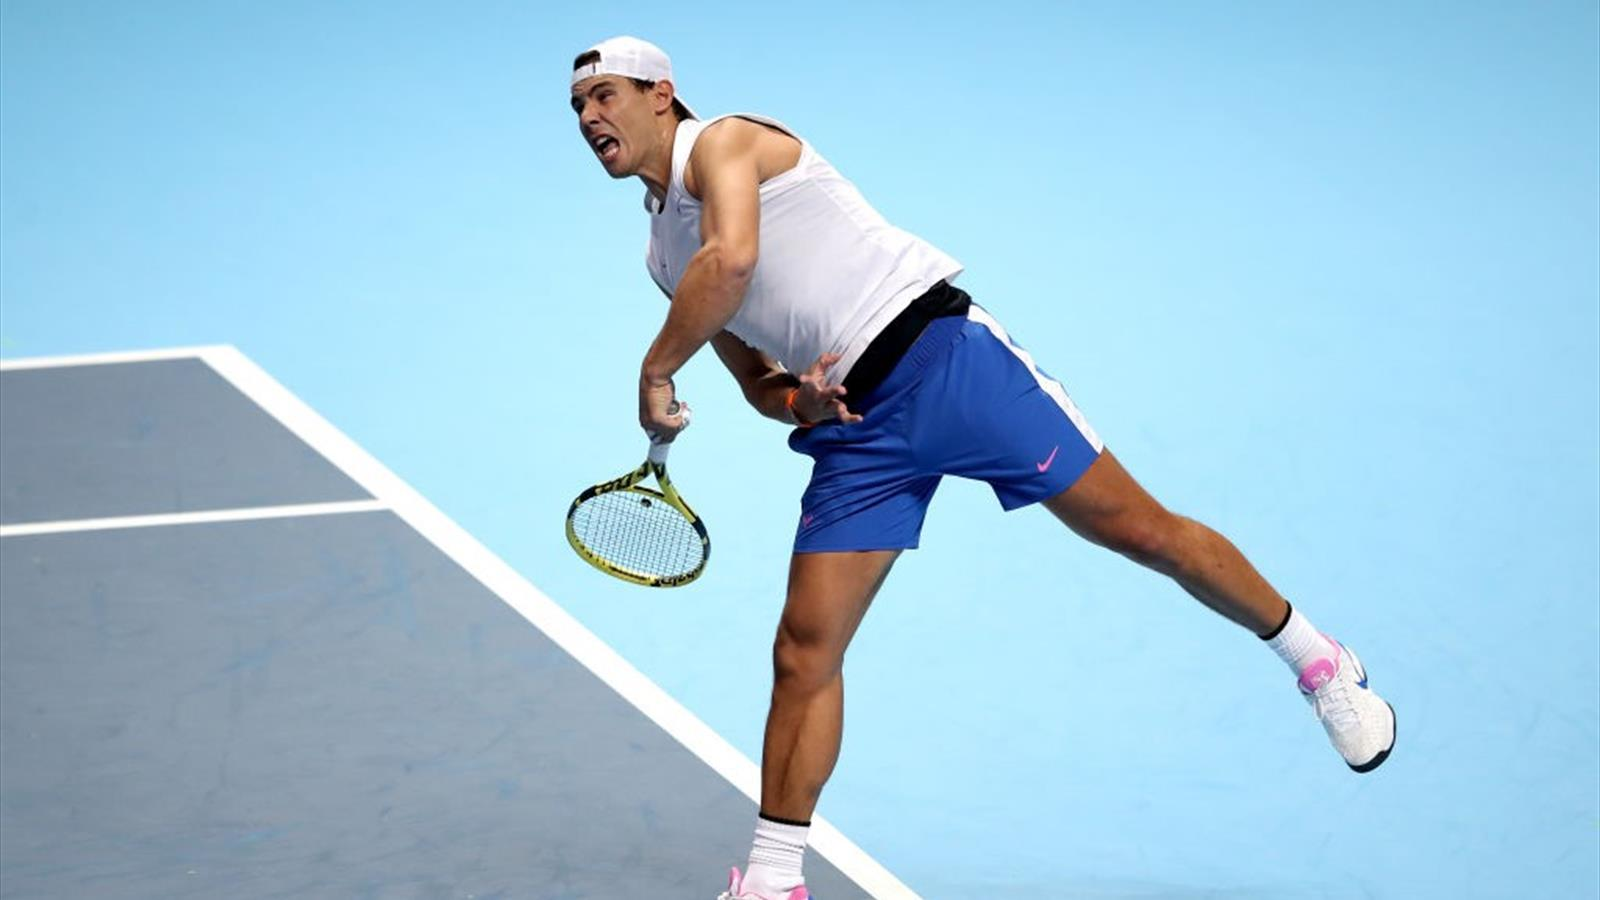 Tennis news - ATP Finals Day Two Order of Play: Rafael Nadal begins bid for elusive title